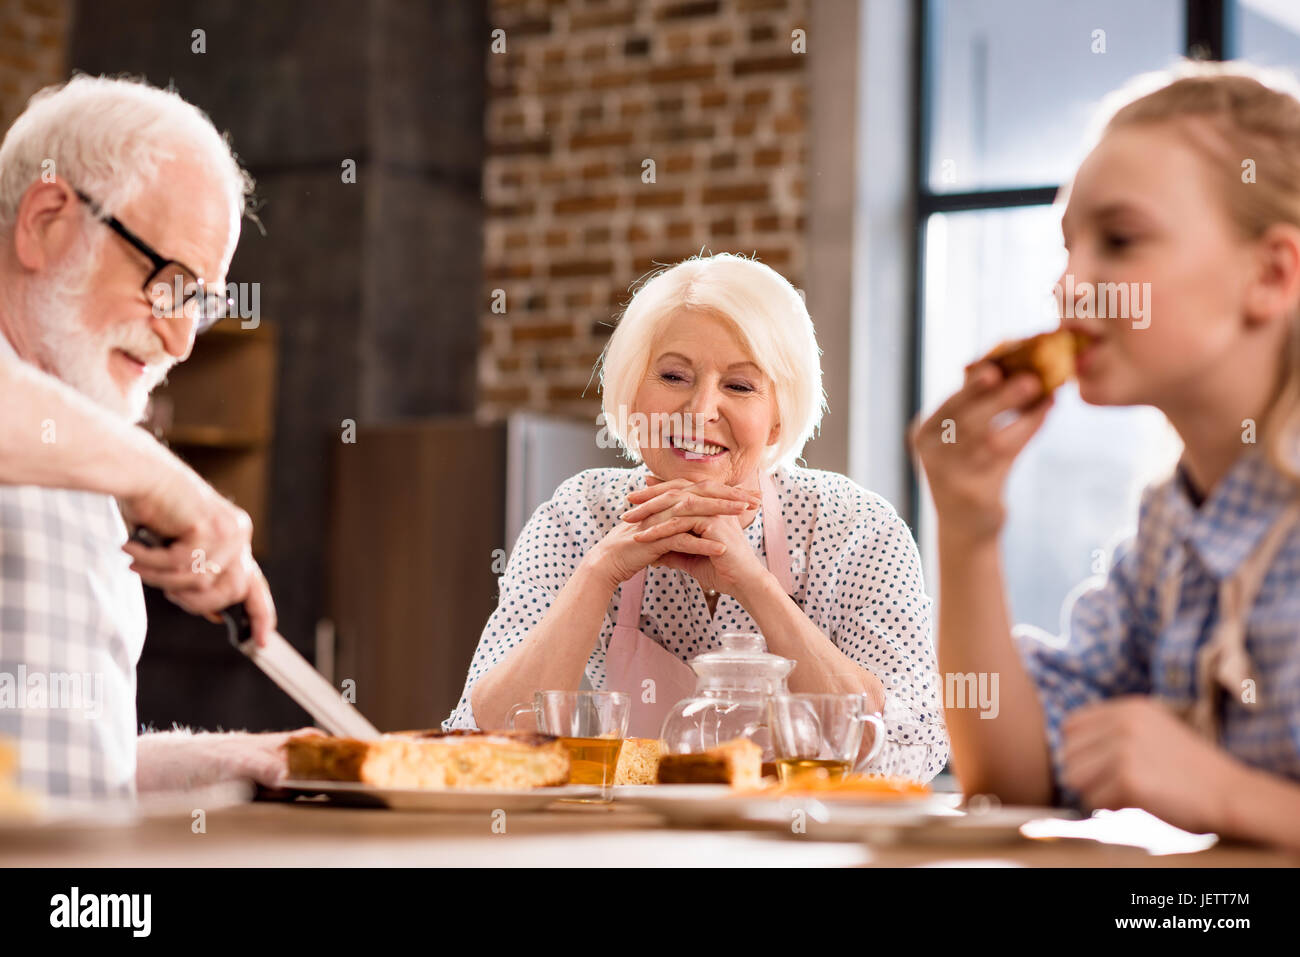 side view of man cutting homemade pie with family near by - Stock Image